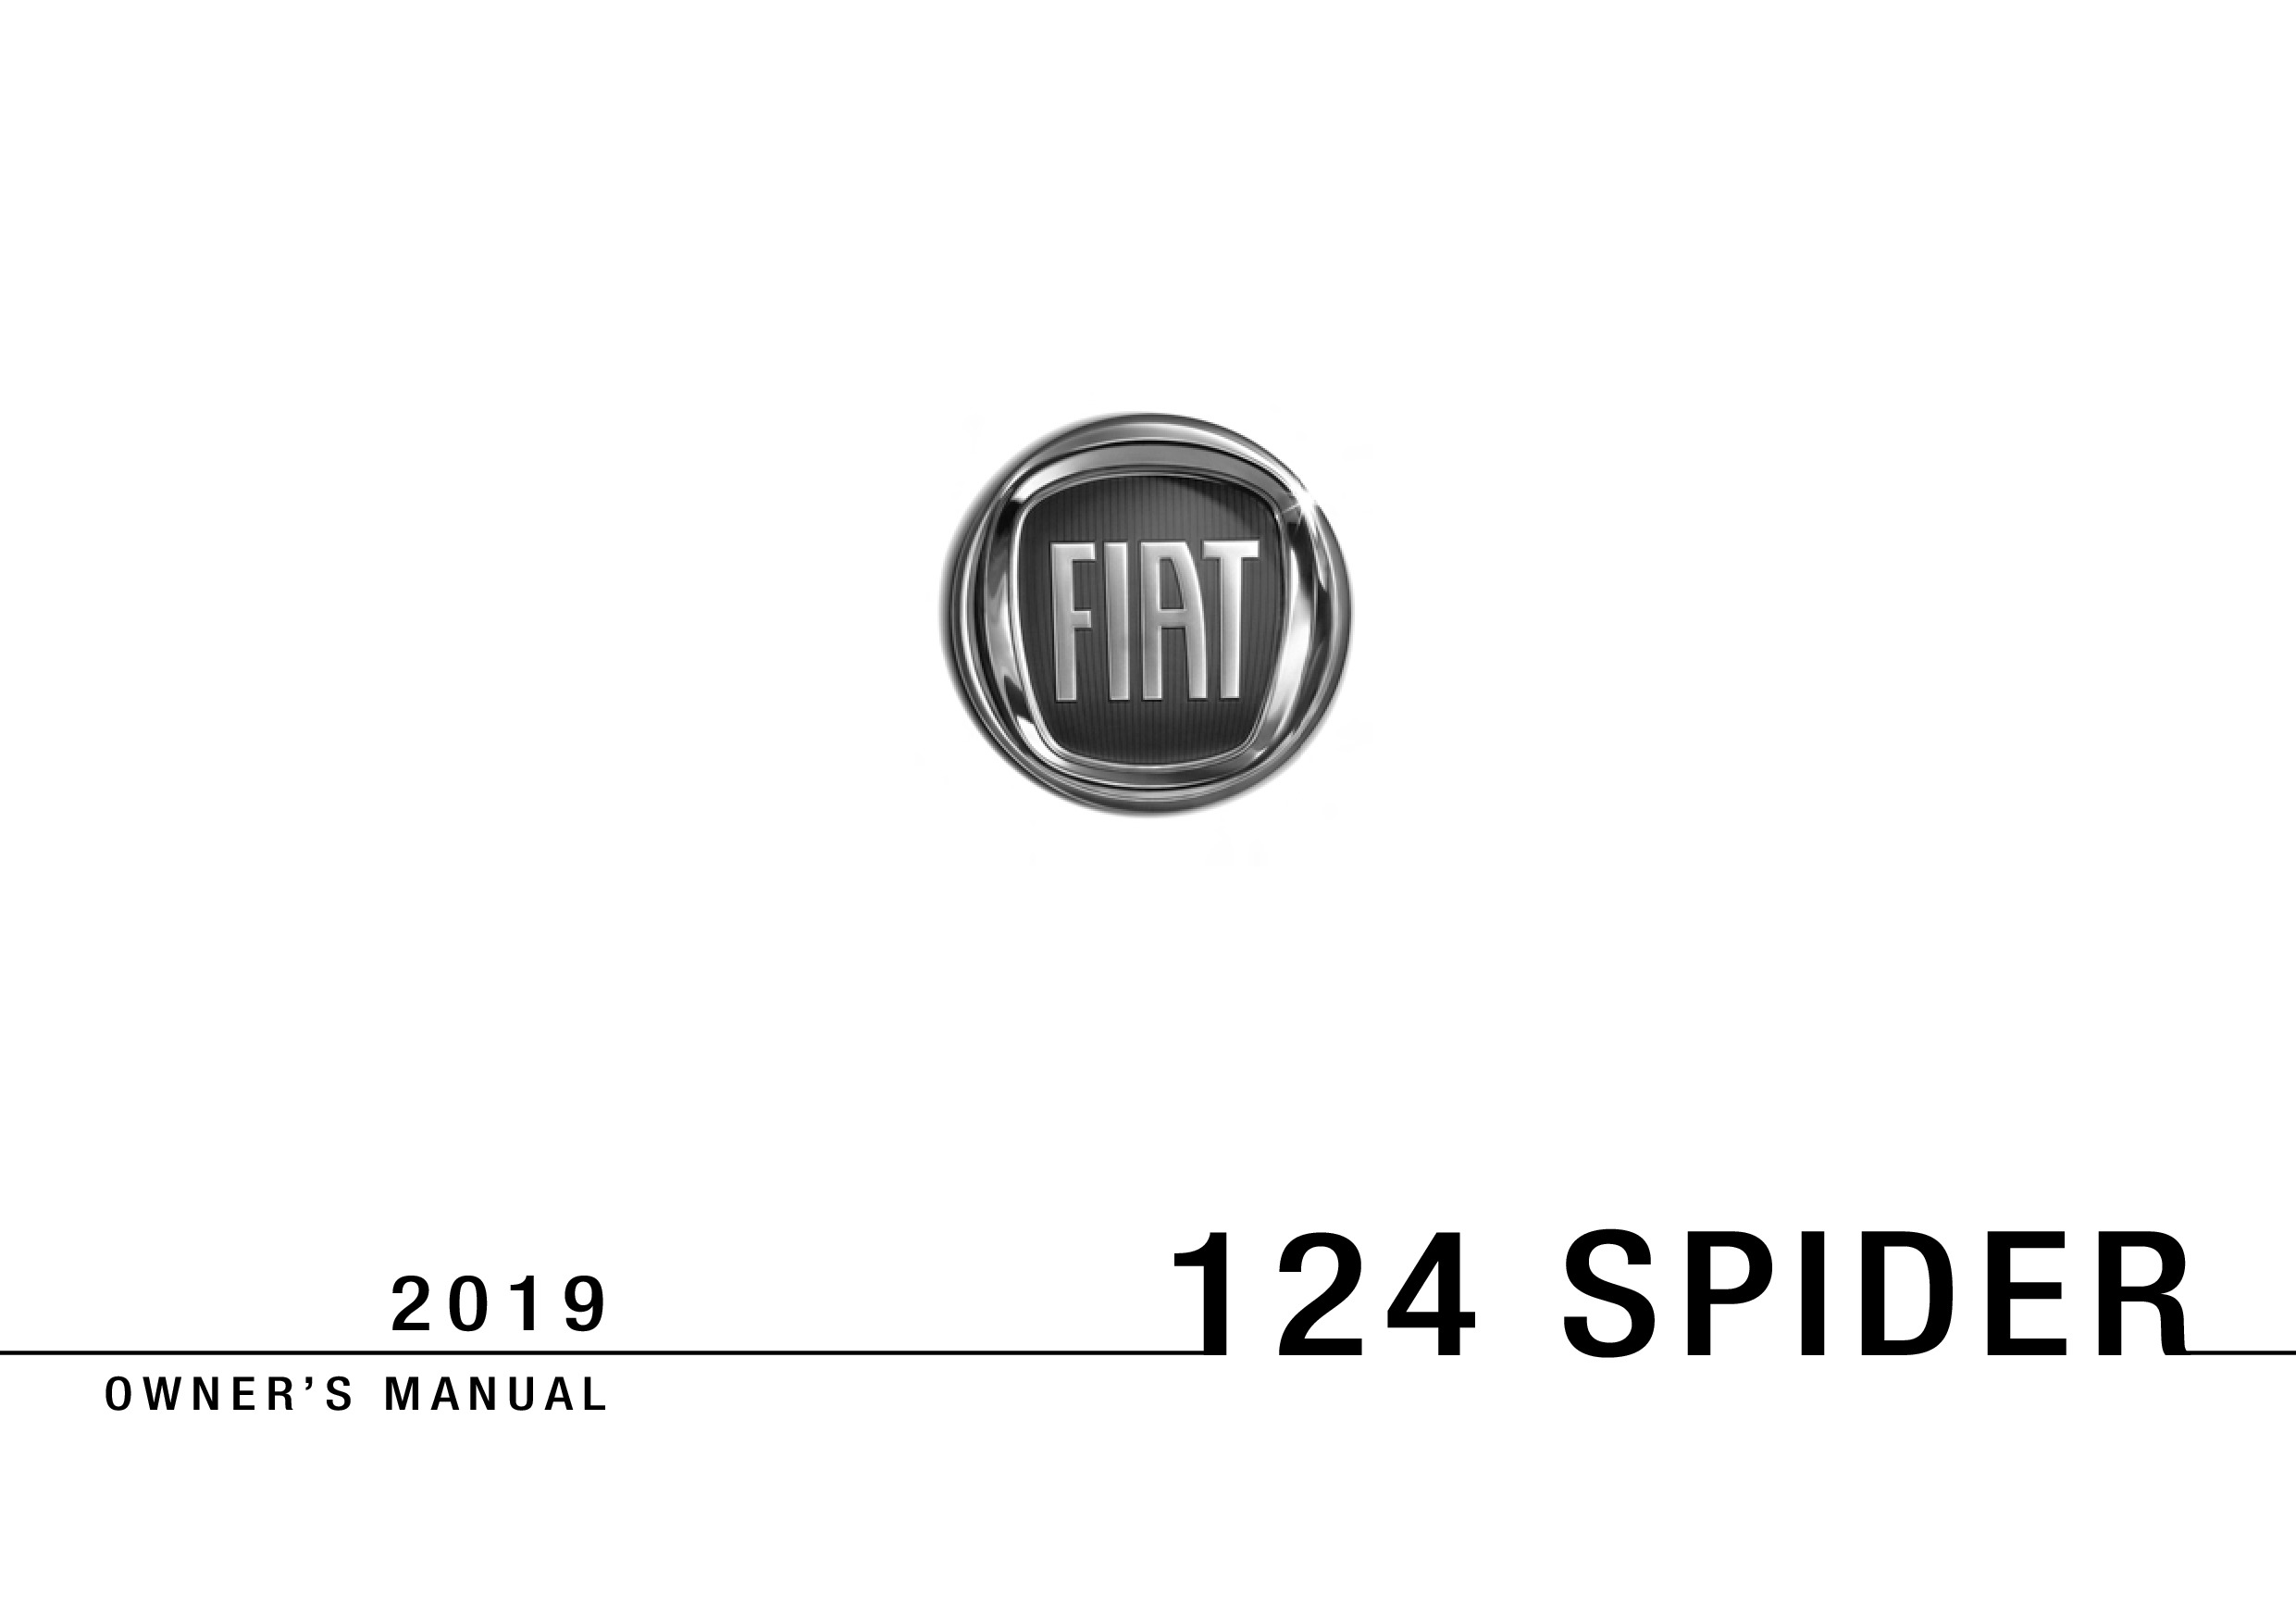 2019 Fiat 124 Spider owners manual